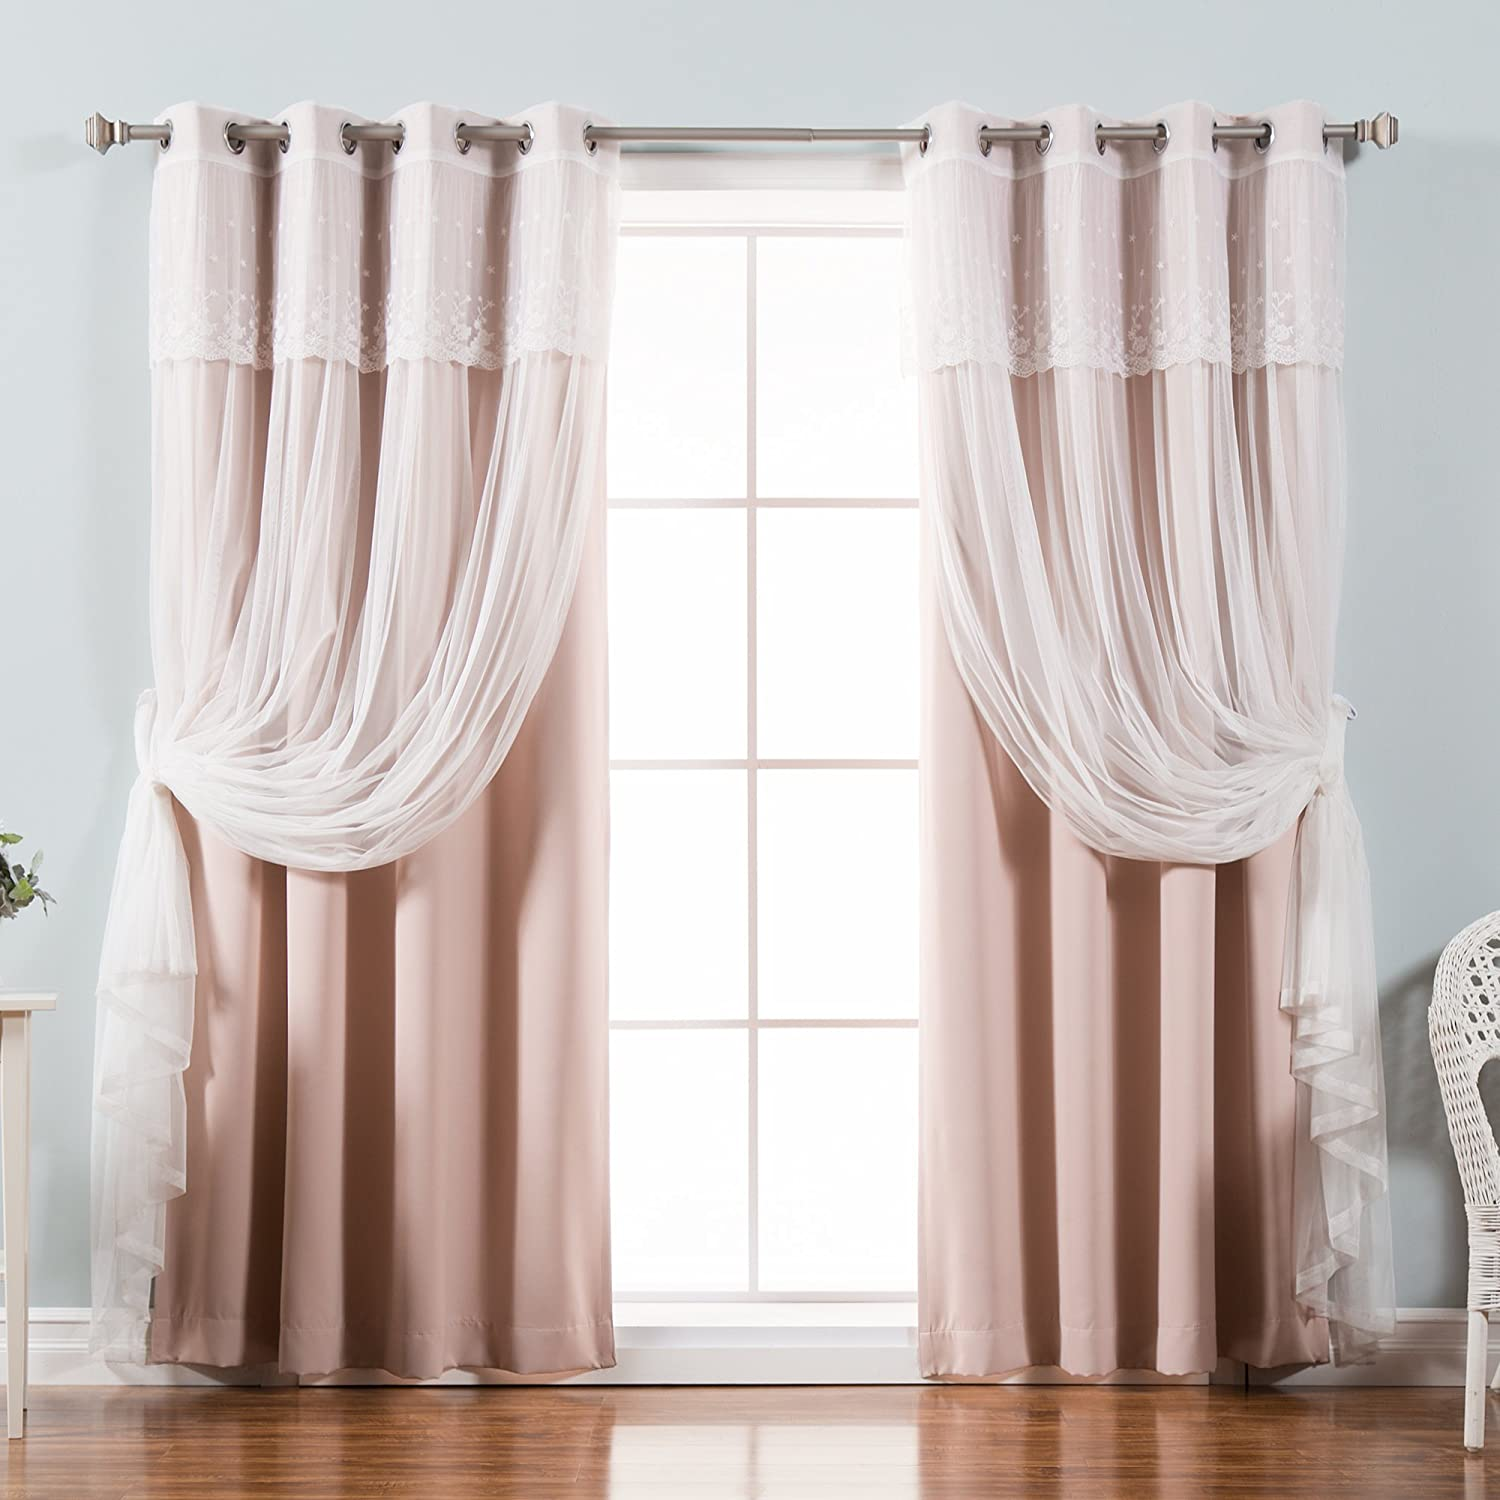 best home fashion blackout curtains ease bedding with style. Black Bedroom Furniture Sets. Home Design Ideas